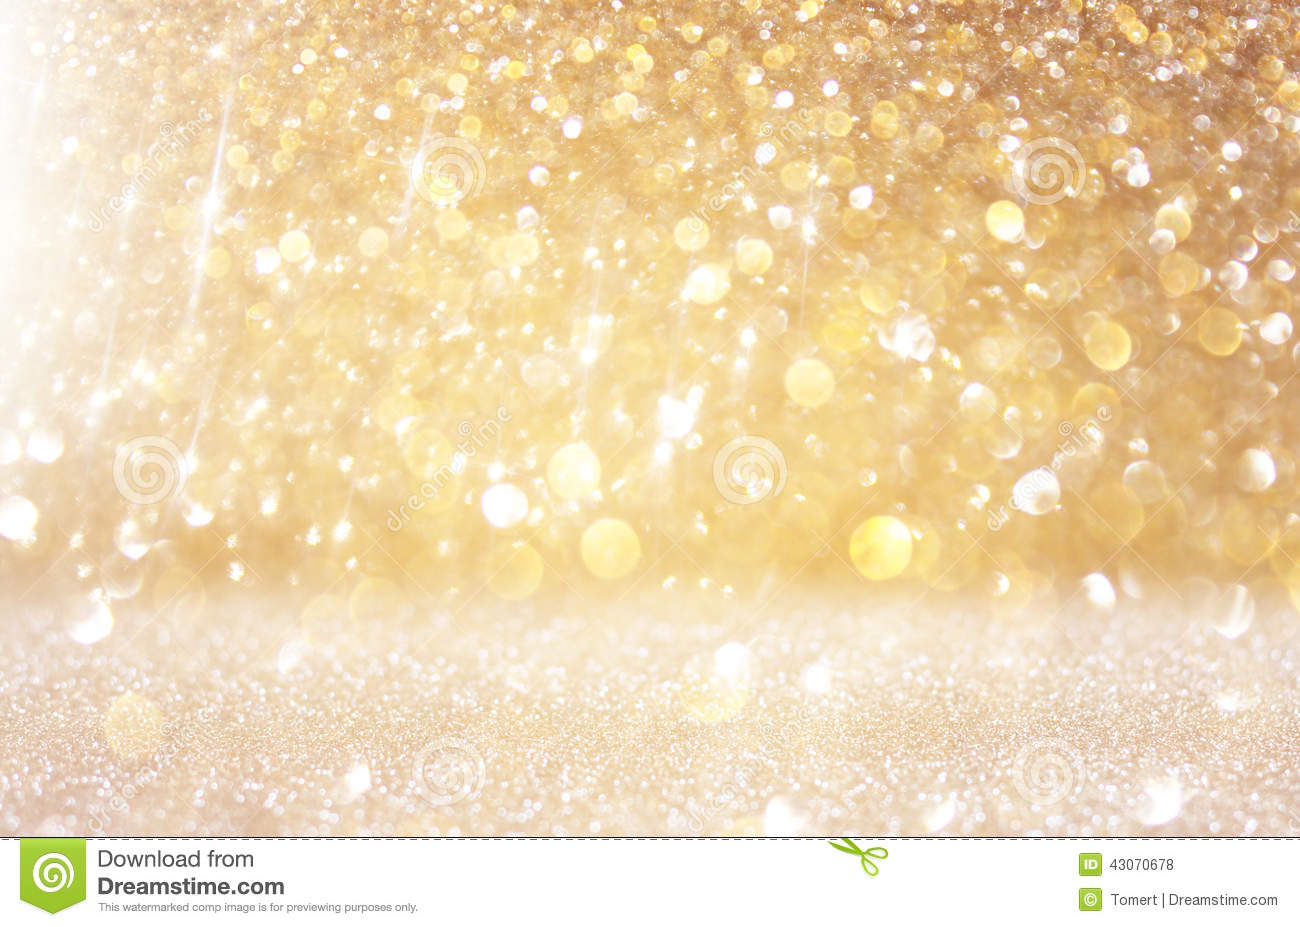 light gold vintage background - photo #8